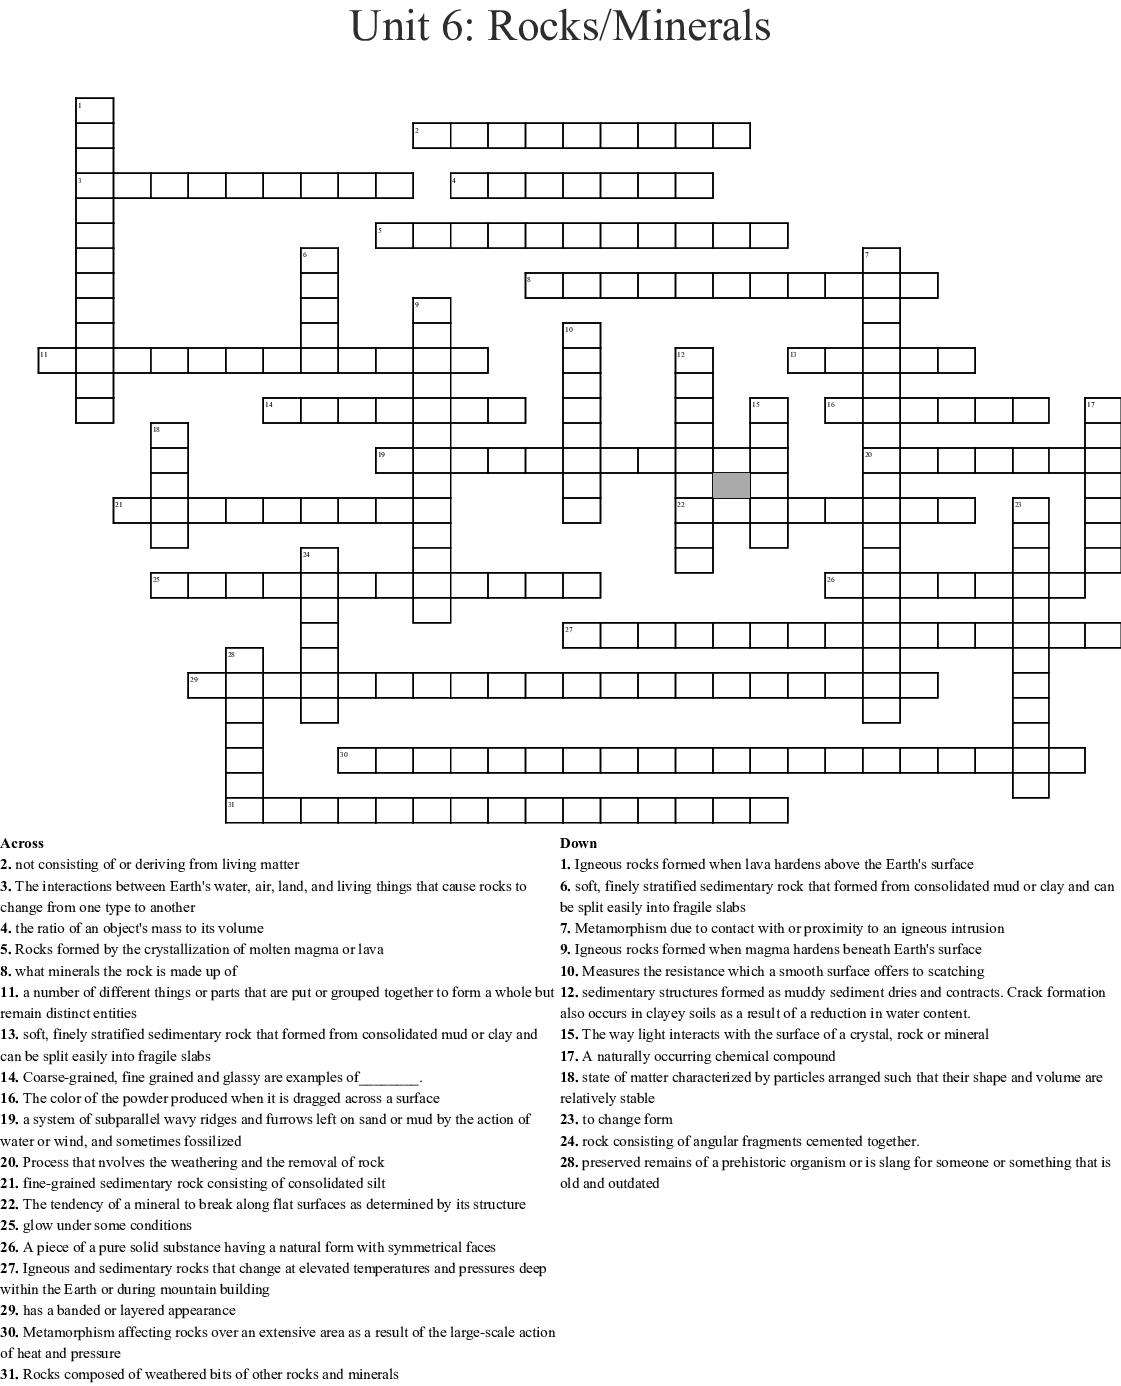 Rocks and minerals Word Search - WordMint